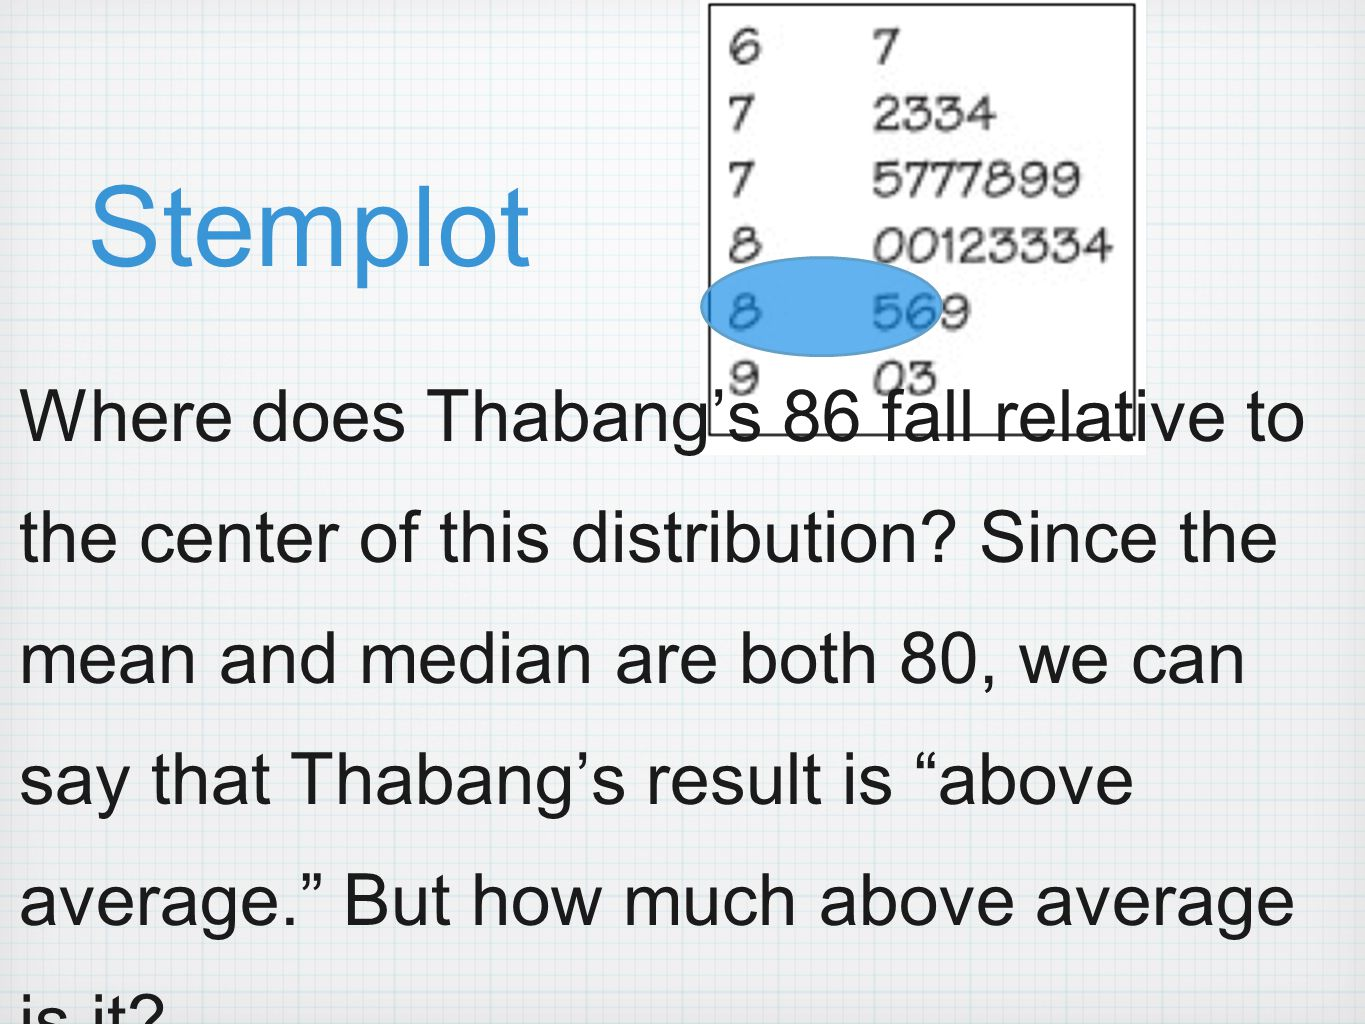 Stemplot Where does Thabang's 86 fall relative to the center of this distribution.